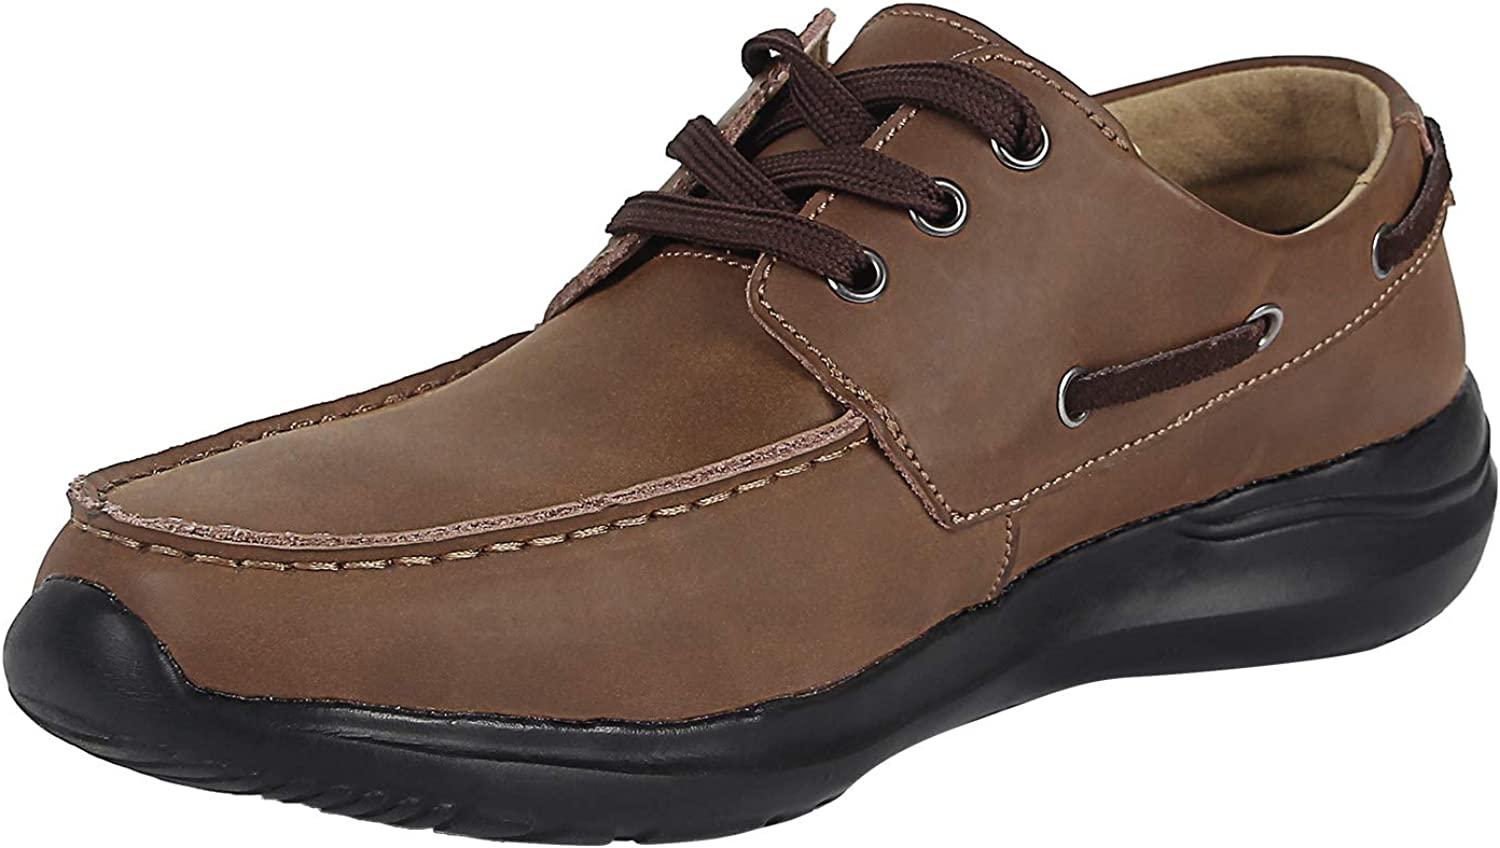 OUTDOOWALS Mens Boat shoes Lightweight Leather Deck shoes